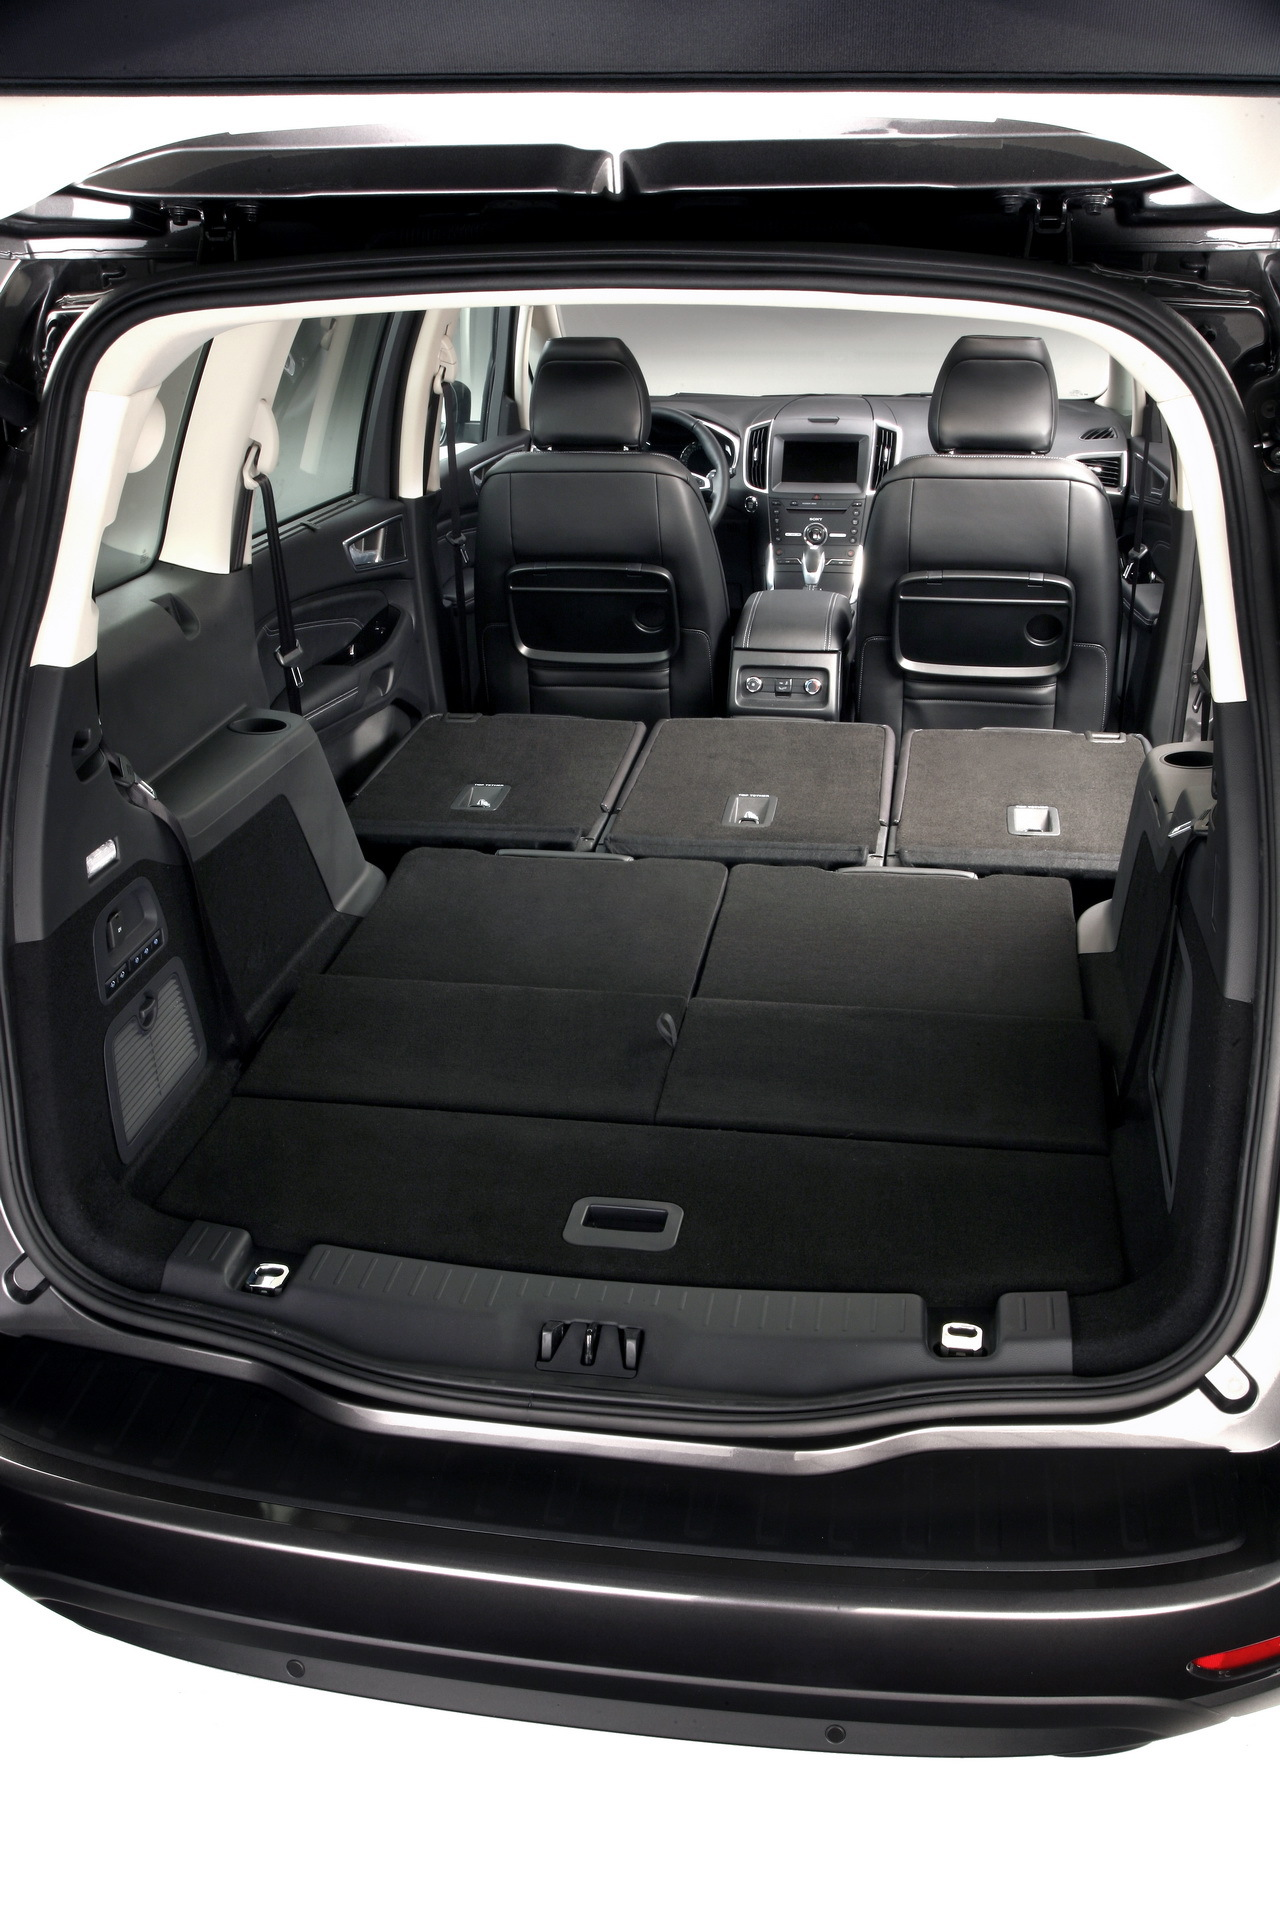 ford galaxy 2015 premi res photos et vid o officielles photo 4 l 39 argus. Black Bedroom Furniture Sets. Home Design Ideas